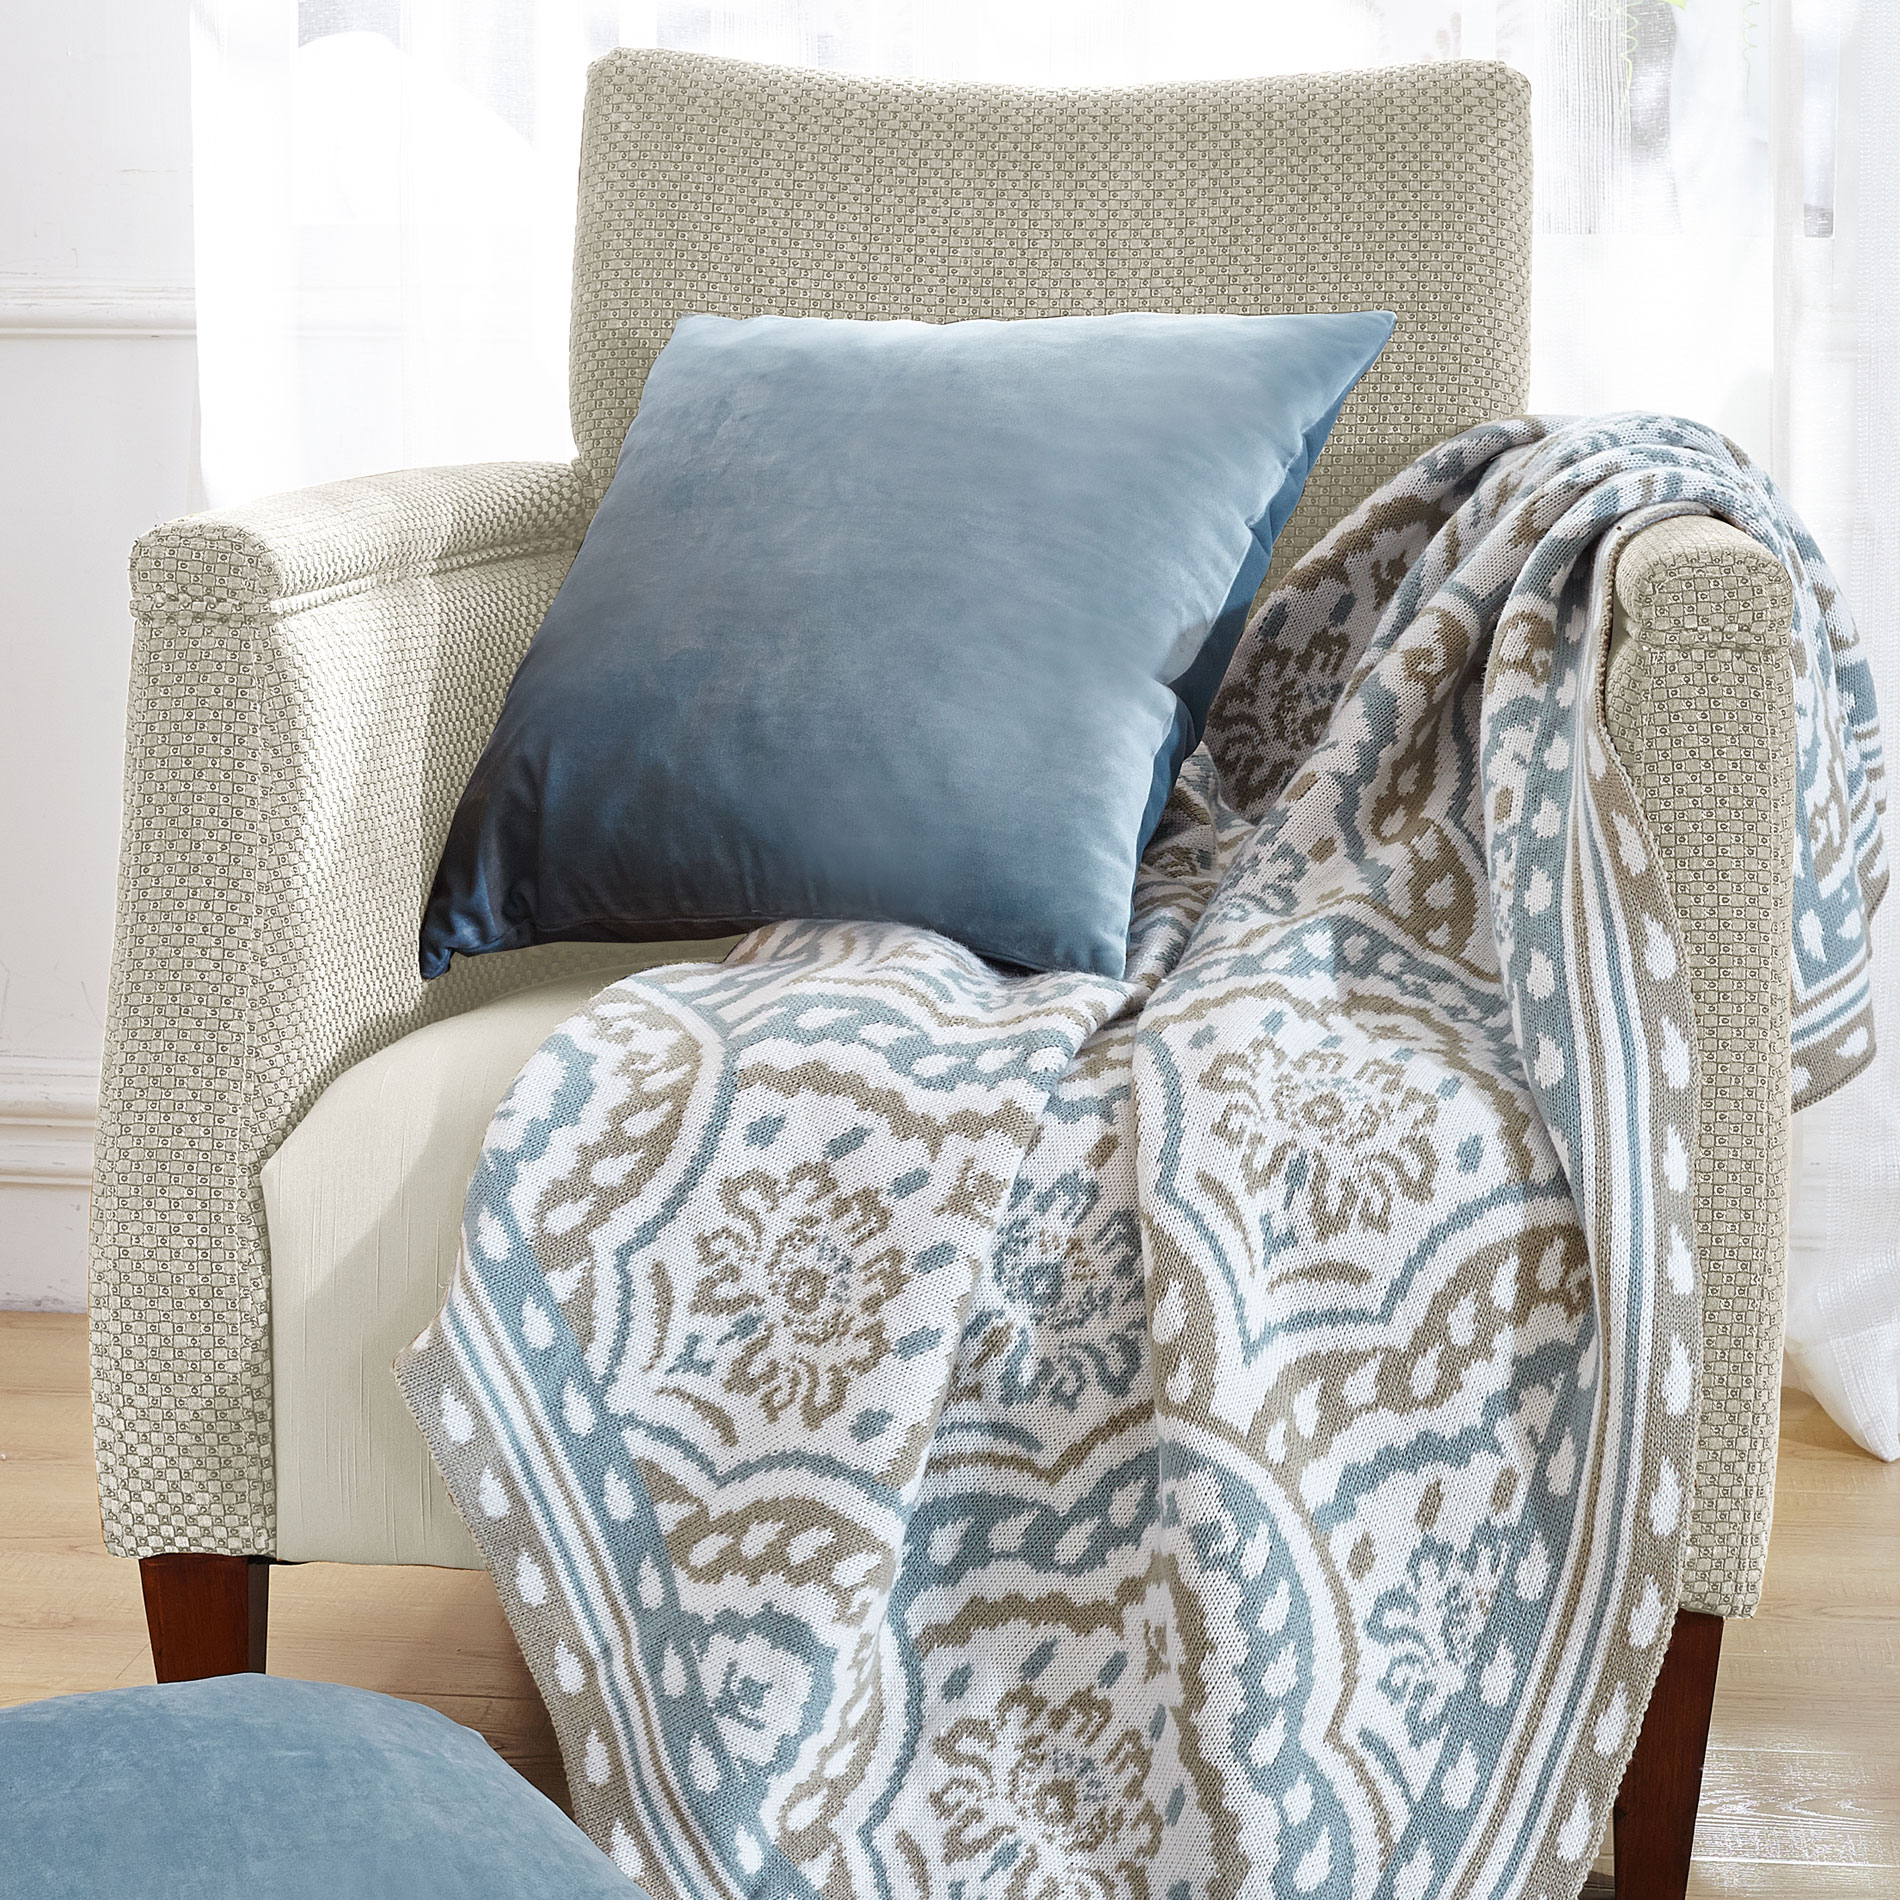 3 Piece Throw Blanket and Throw Pillow Shell Sets